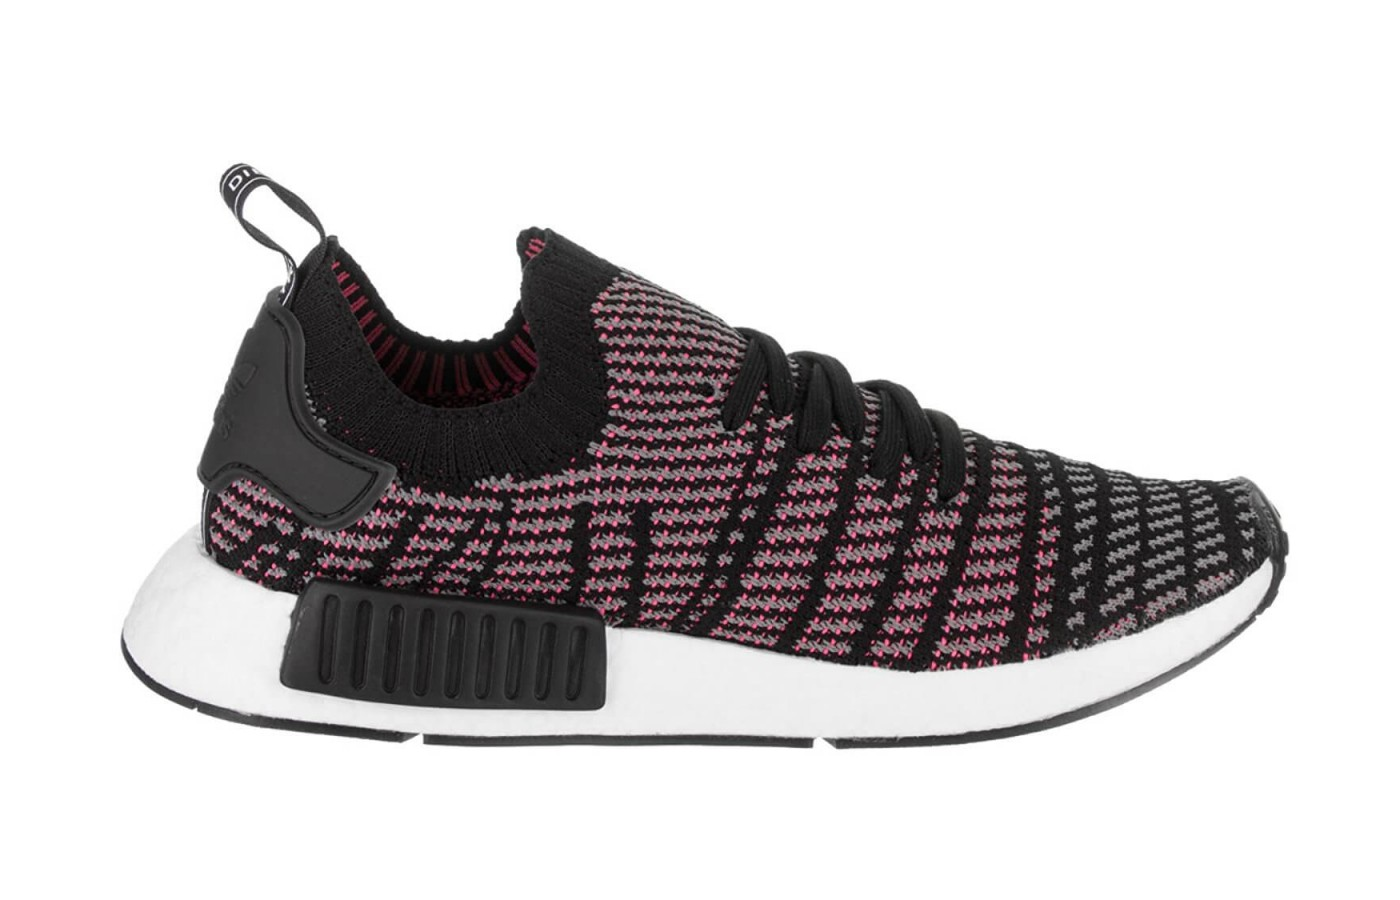 eee04bfc1 ... The Adidas NMD R1 Stlt Primeknit features a Boost midsole ...